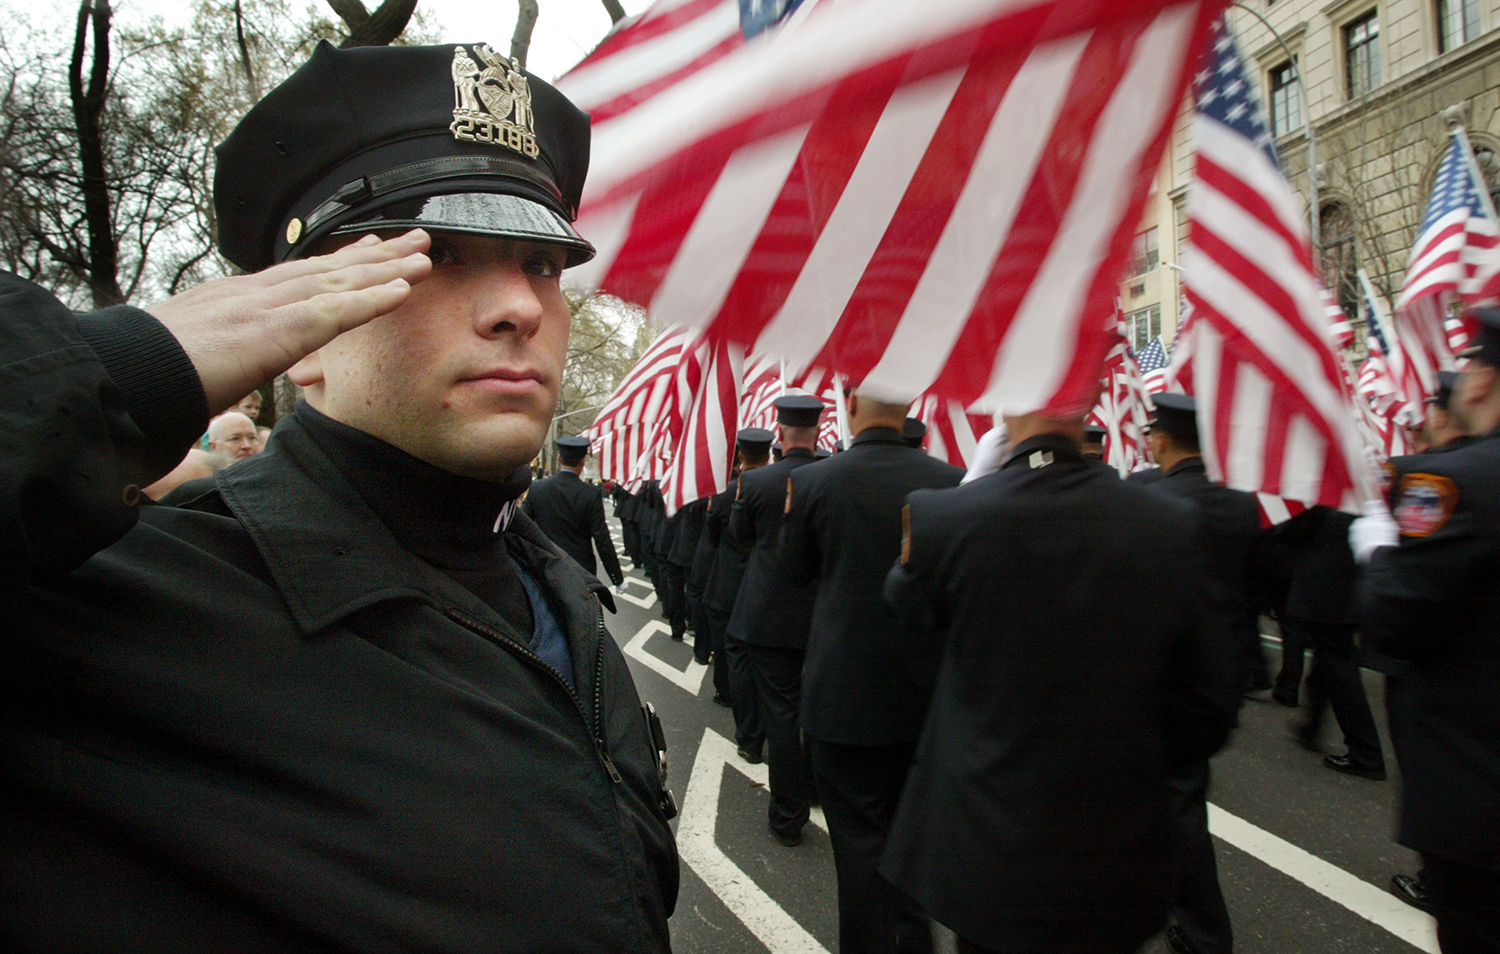 A New York City police officer salutes firefighters as they march in the annual St. Patricks Day parade in New York on March 16, 2002.